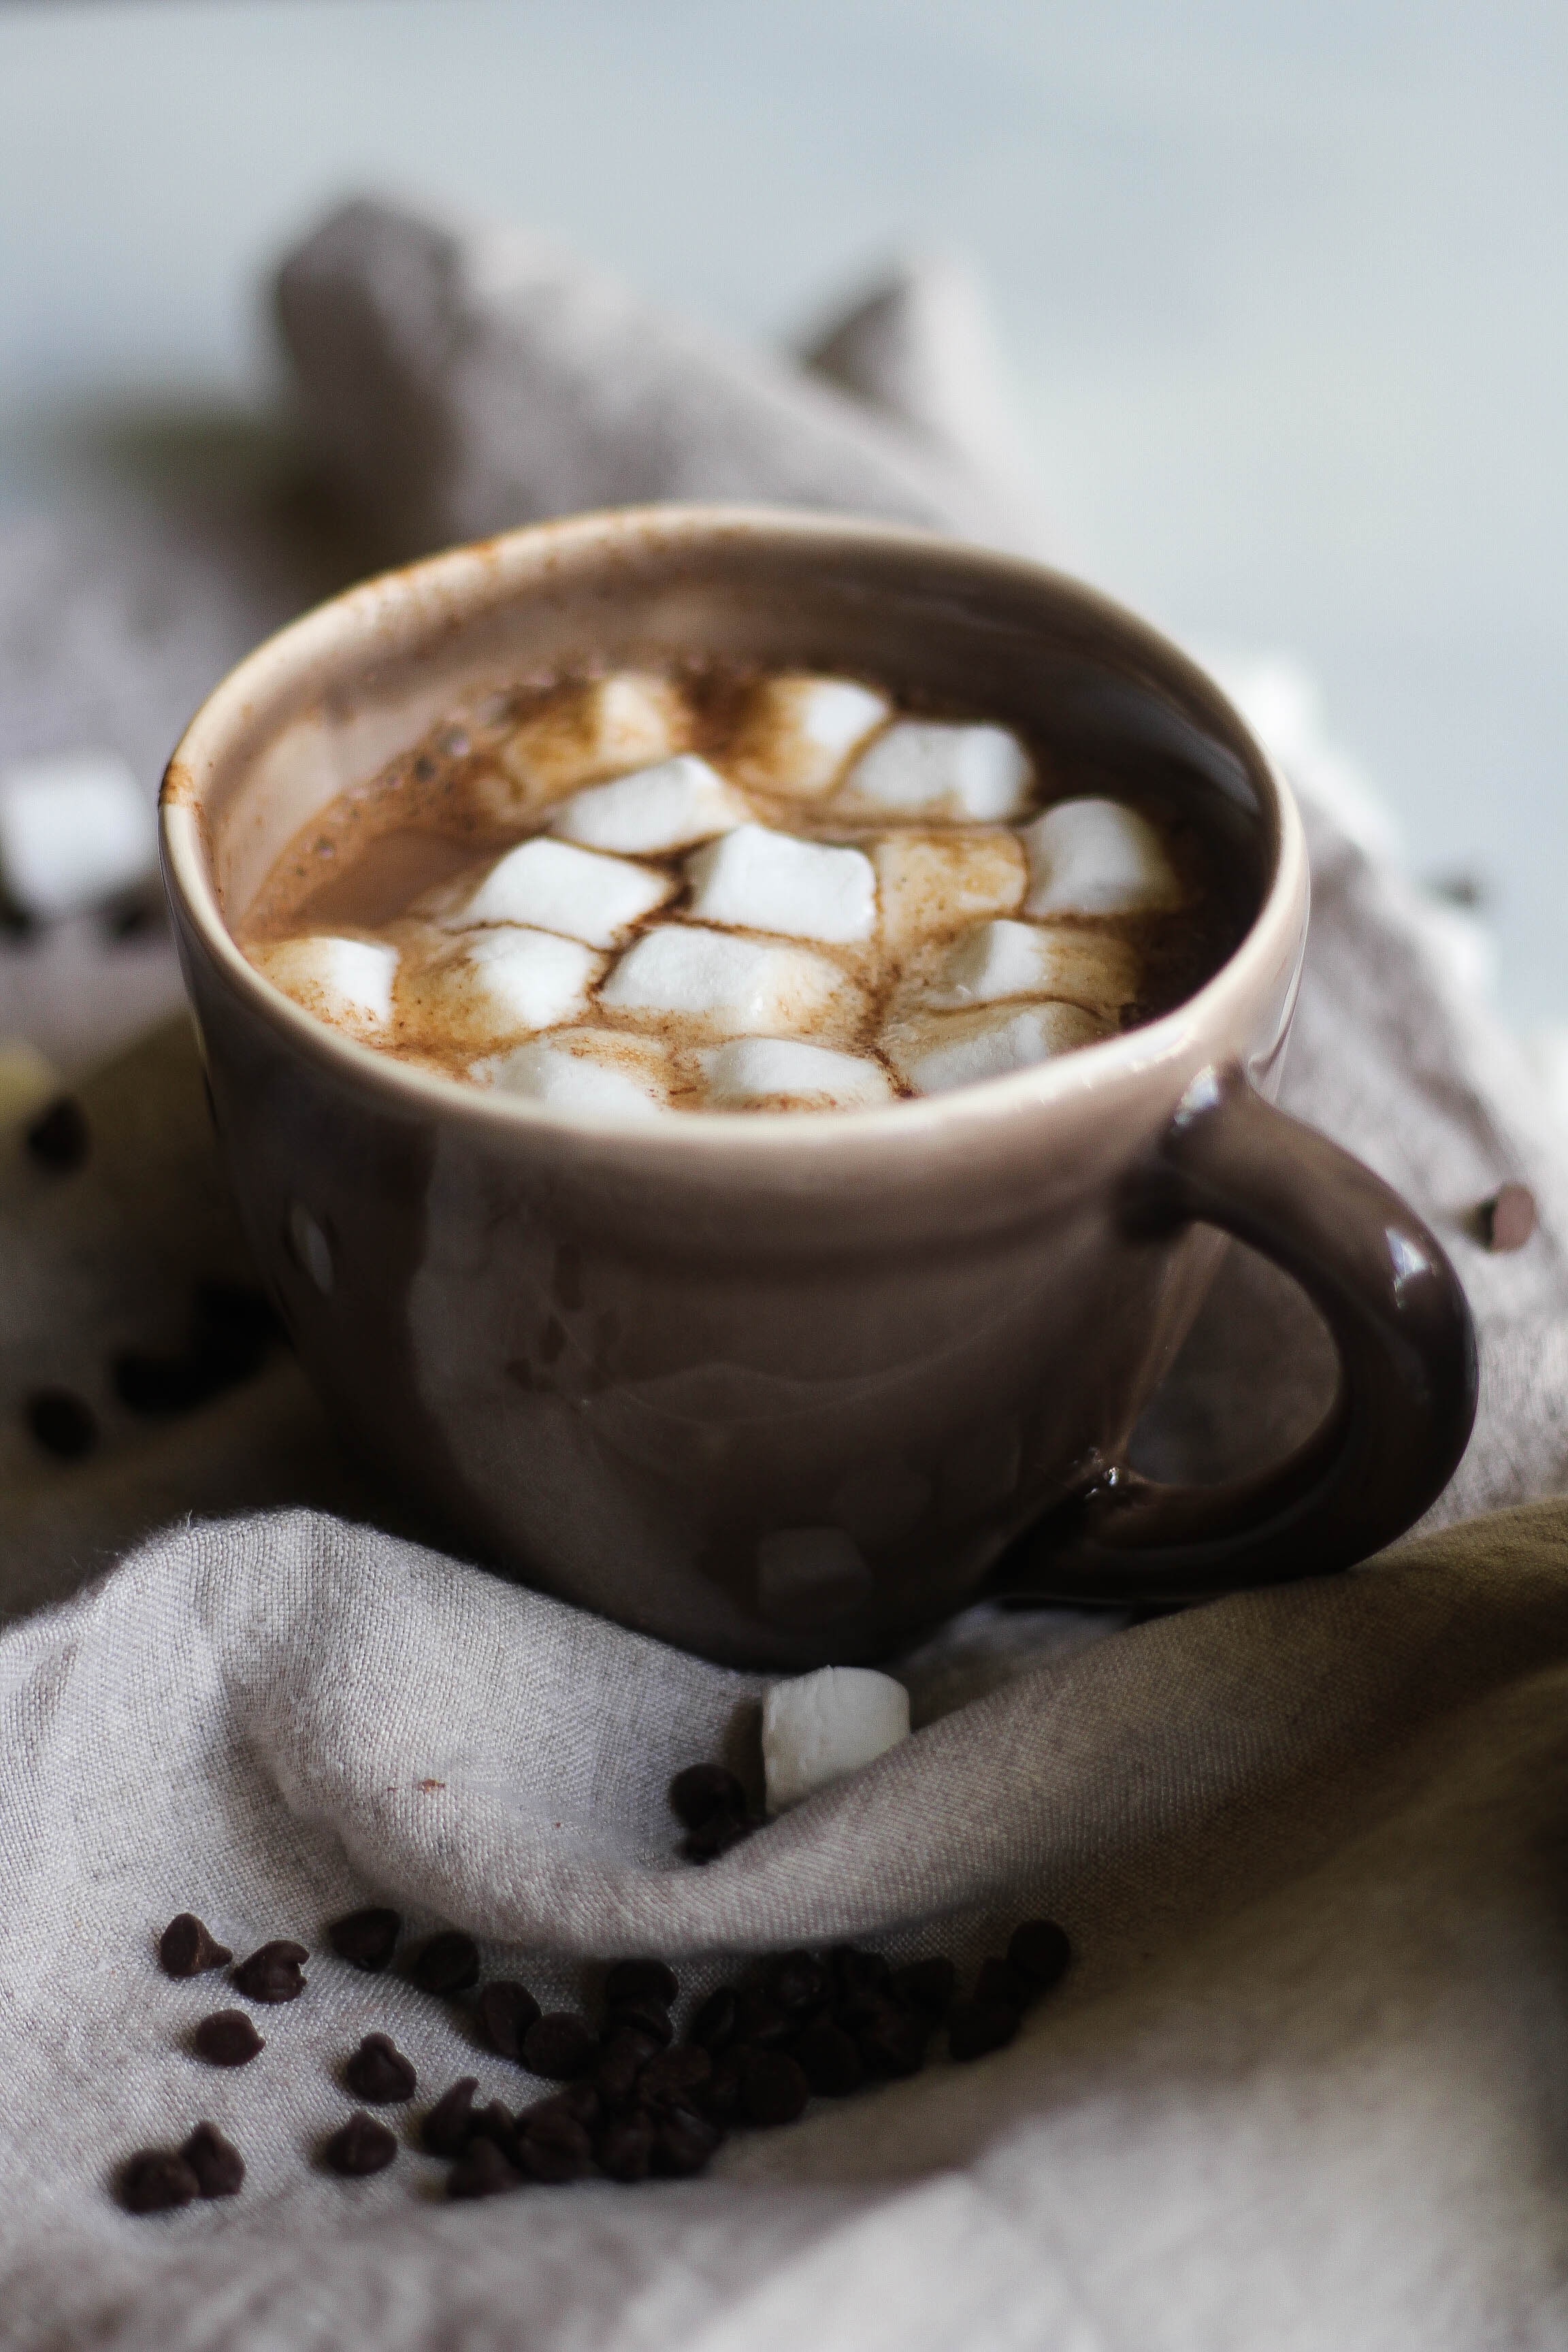 This Almond Milk Hot Chocolate is the perfect Fall dessert drink to enjoy on a cold night. Click through for the recipe!